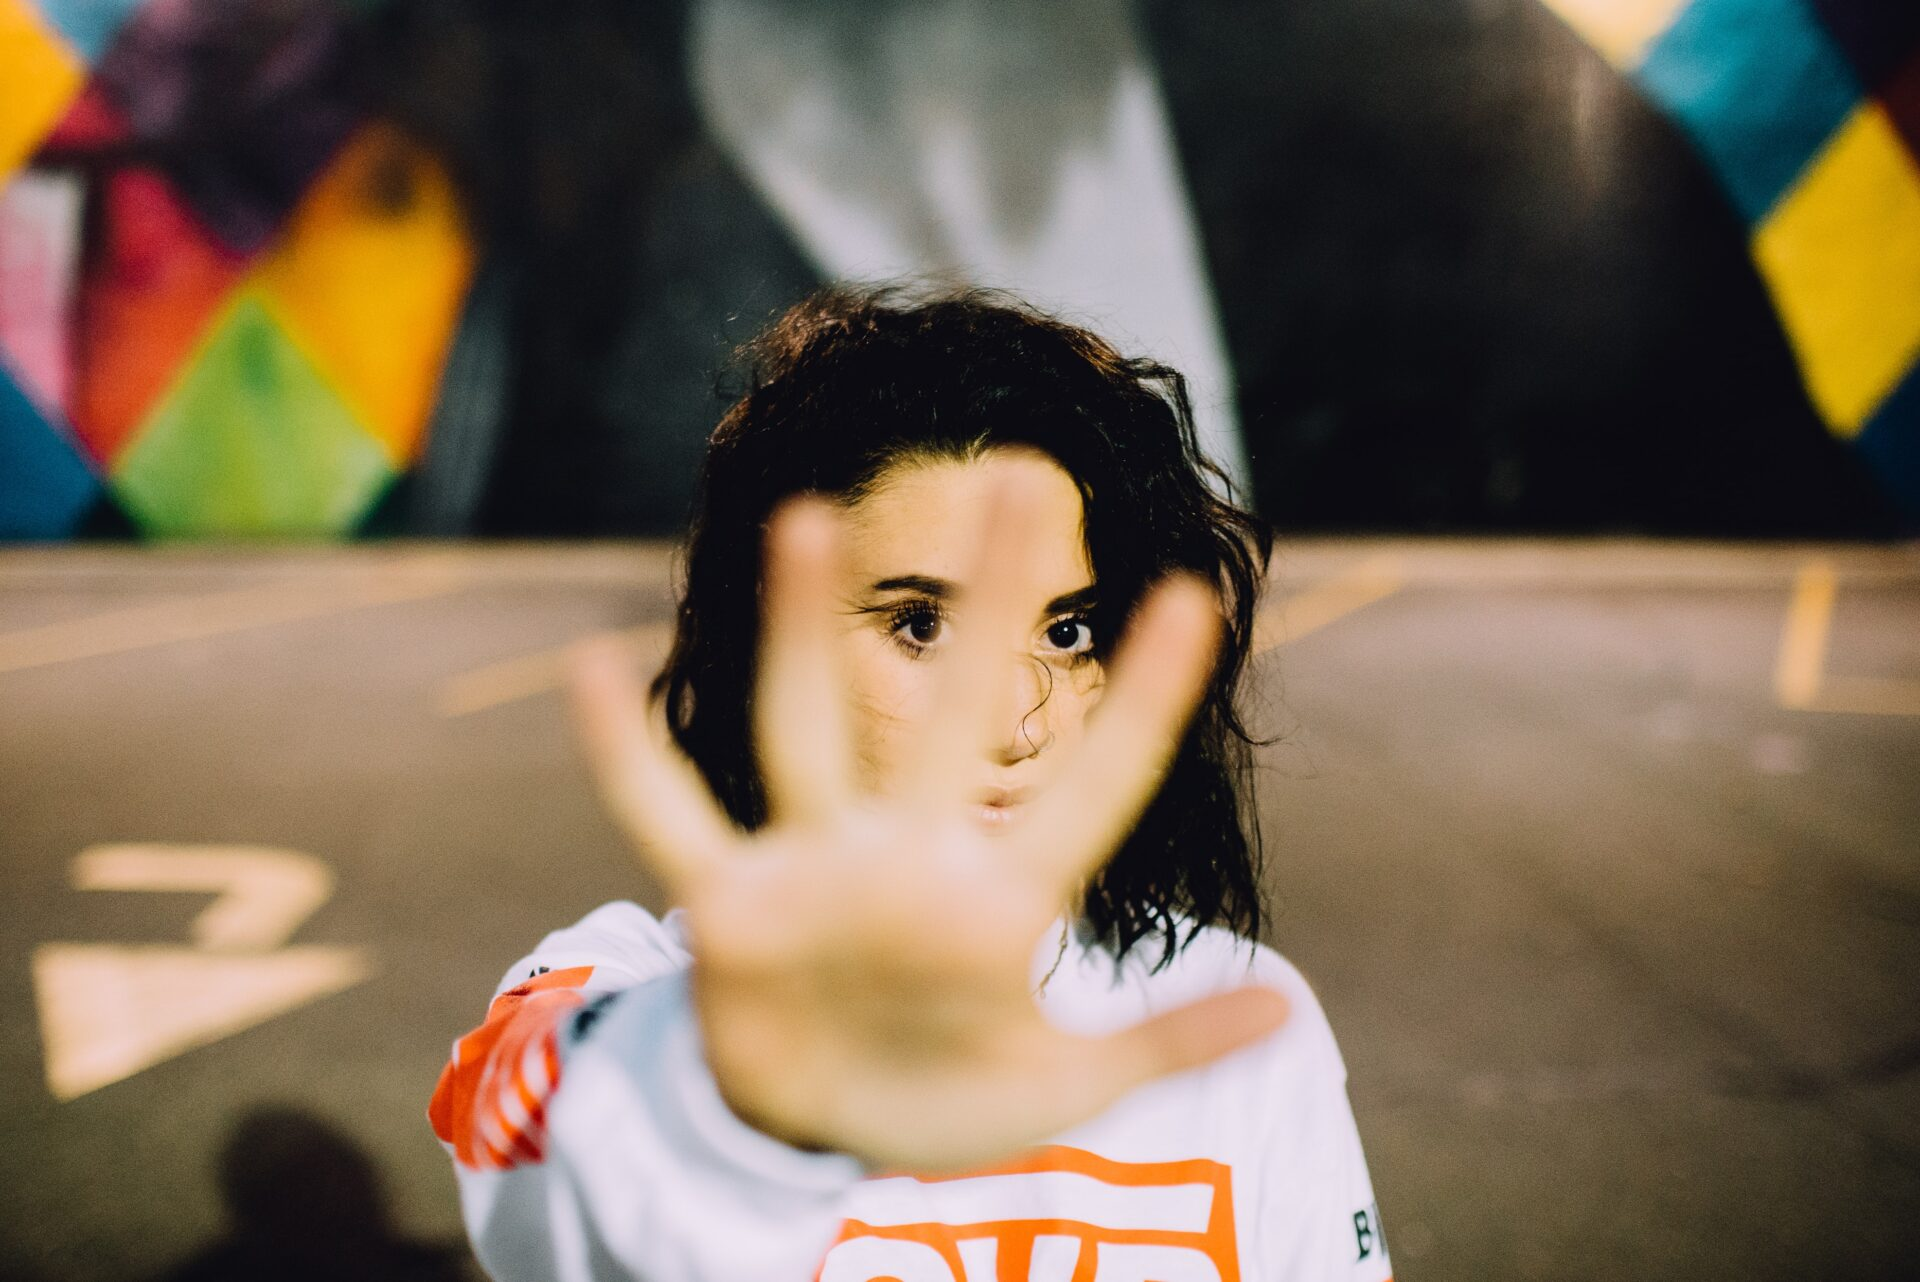 girl standing in front of a grafiti wall with her hand out in front of her face